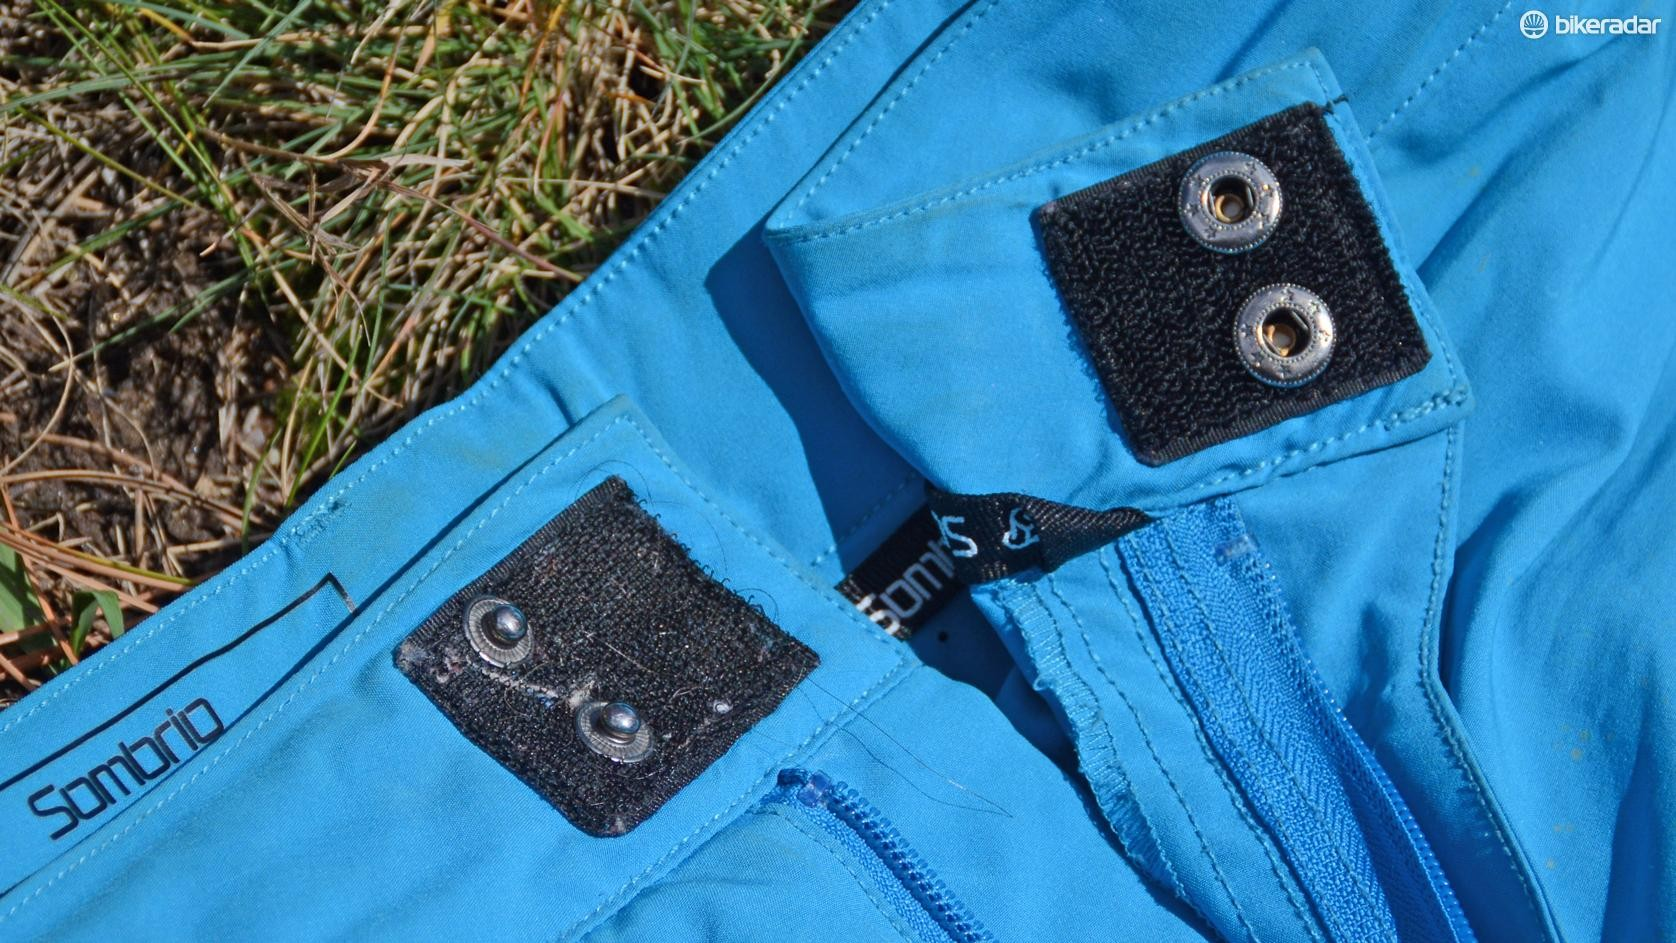 The dual snaps surrounded by Velcro ensure the waist shouldn't come undone